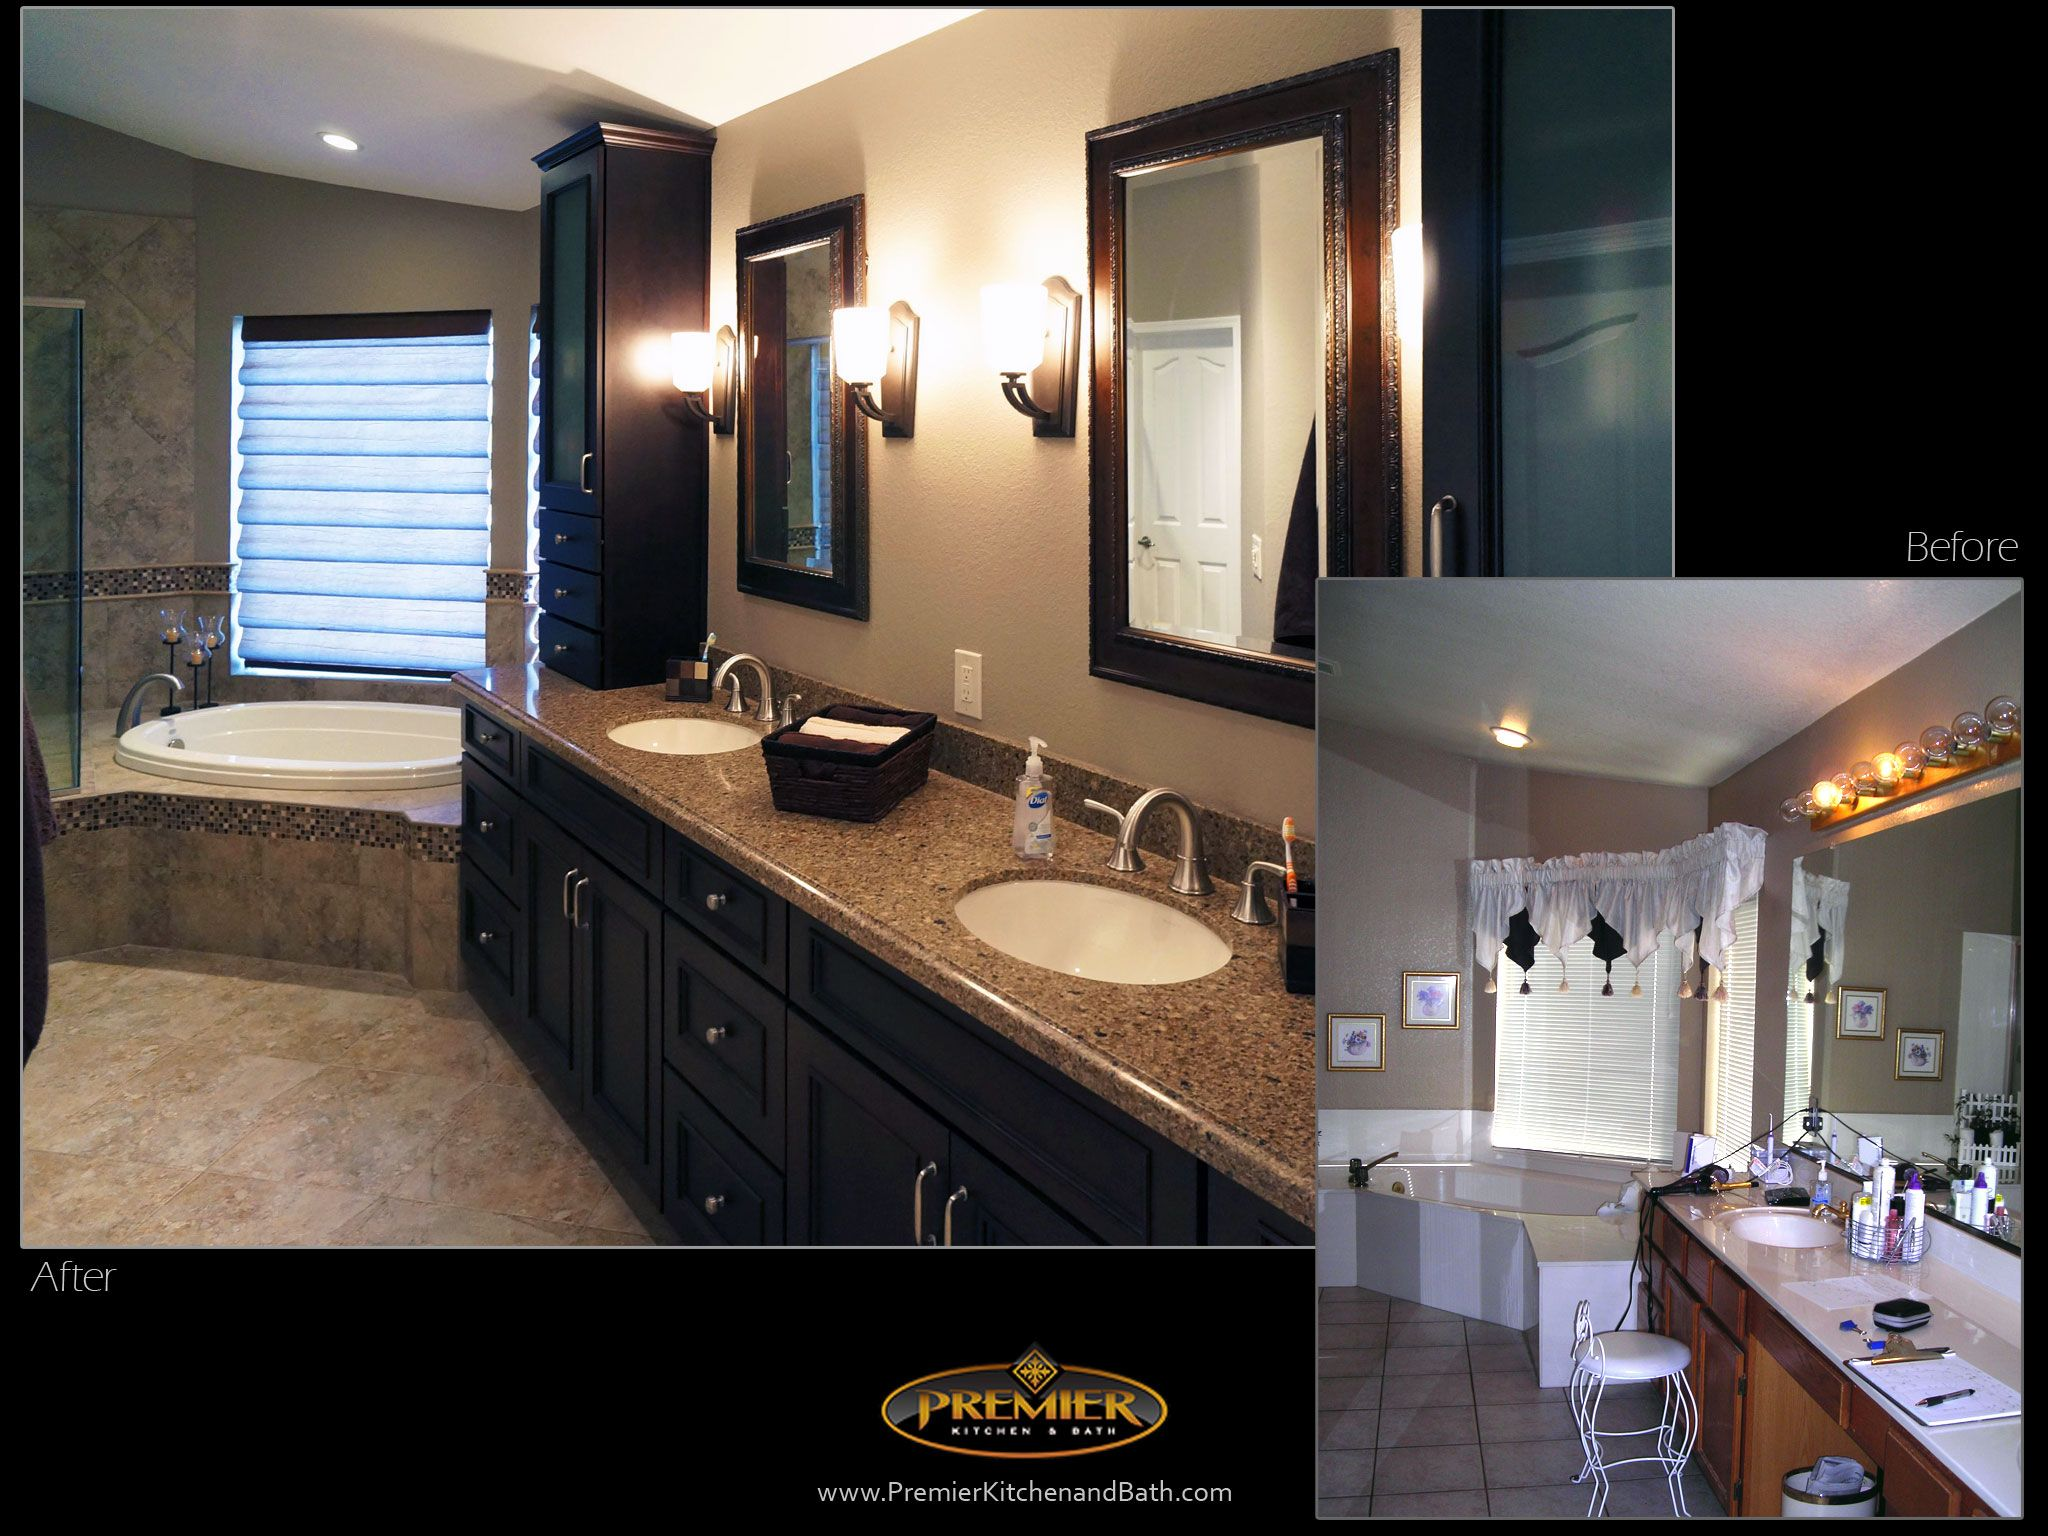 Before & After - Premier Kitchen and Bath. Quality remodeling ...